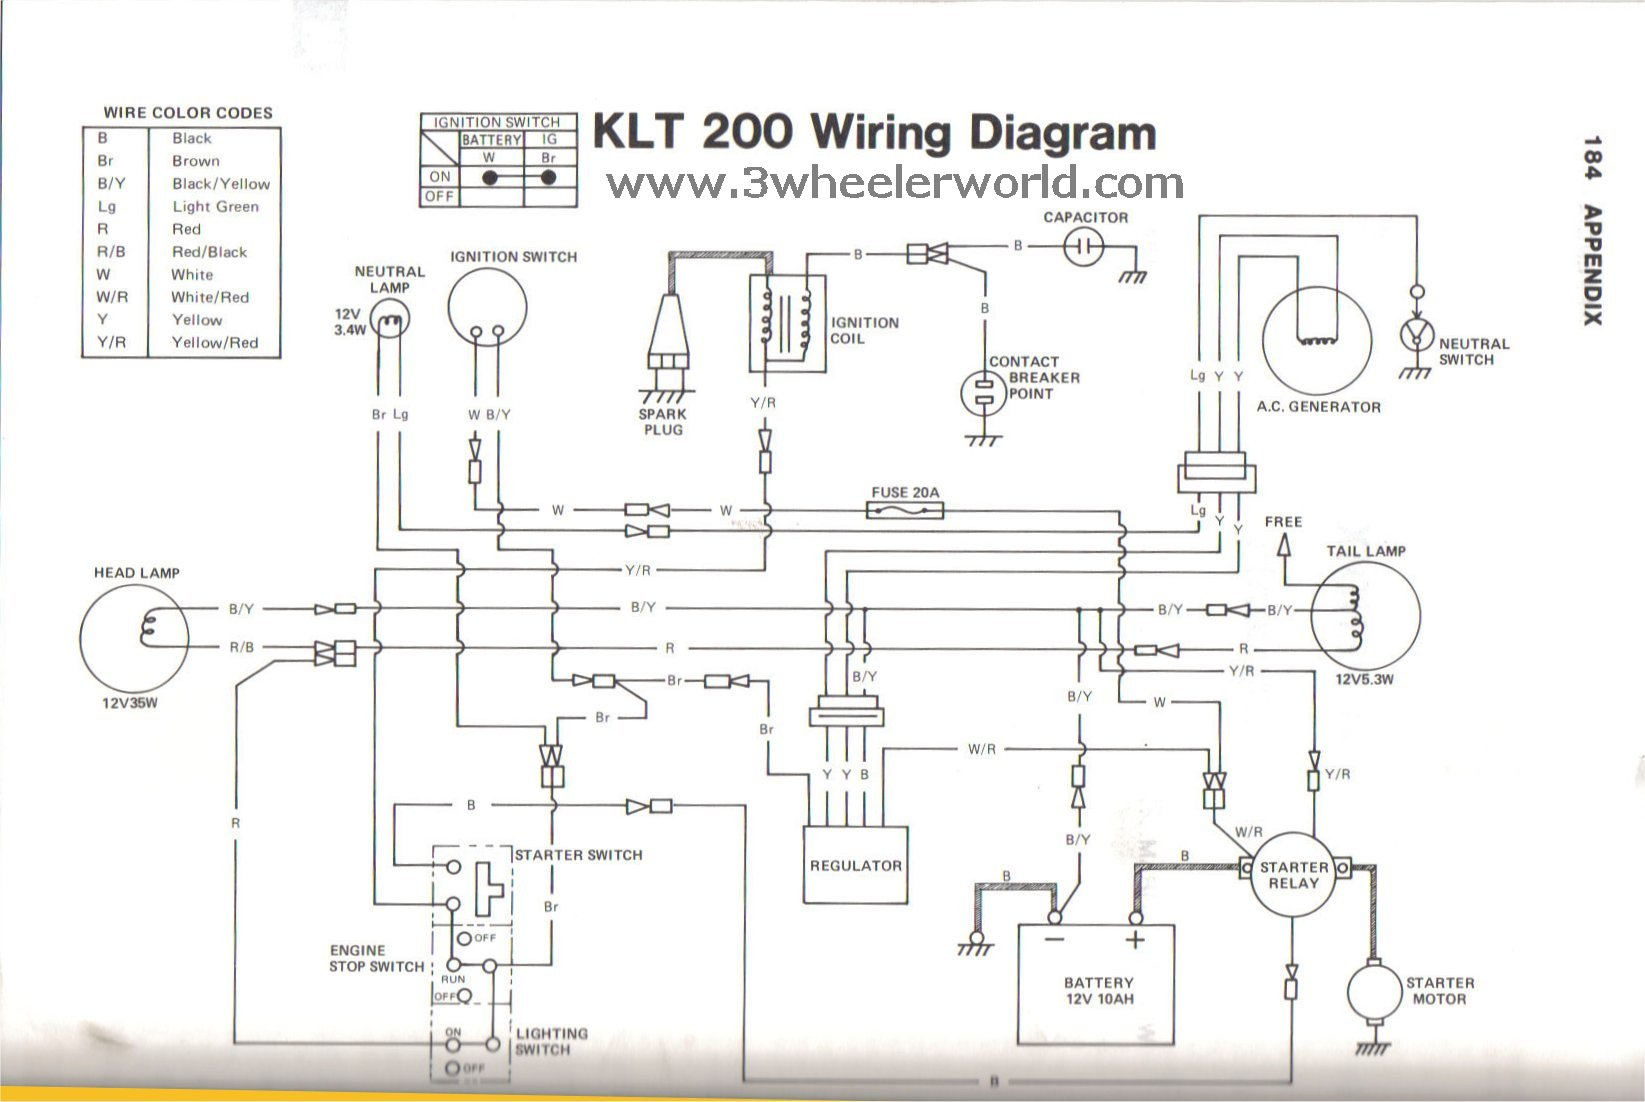 KLT200WiringDiagram1 3 wheeler world tech help kawasaki wiring diagrams 2006 ninja 250 wiring diagram at soozxer.org